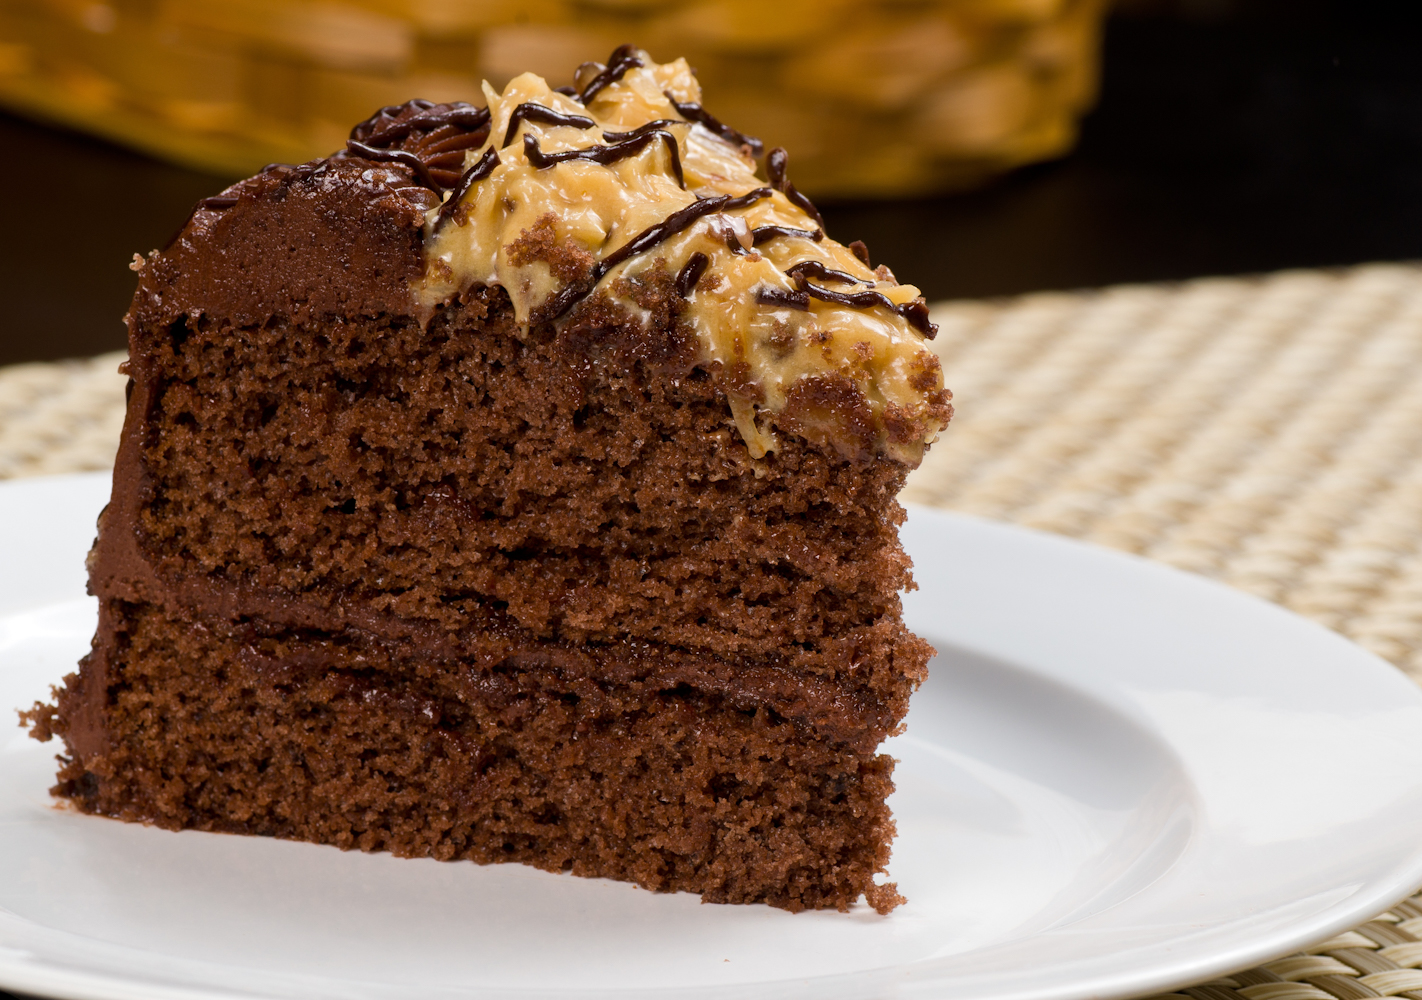 You just can't go wrong with layers of chocolate cake, coconut and pecan. Eat in moderation, and enjoy with a class of milk for nutrition.